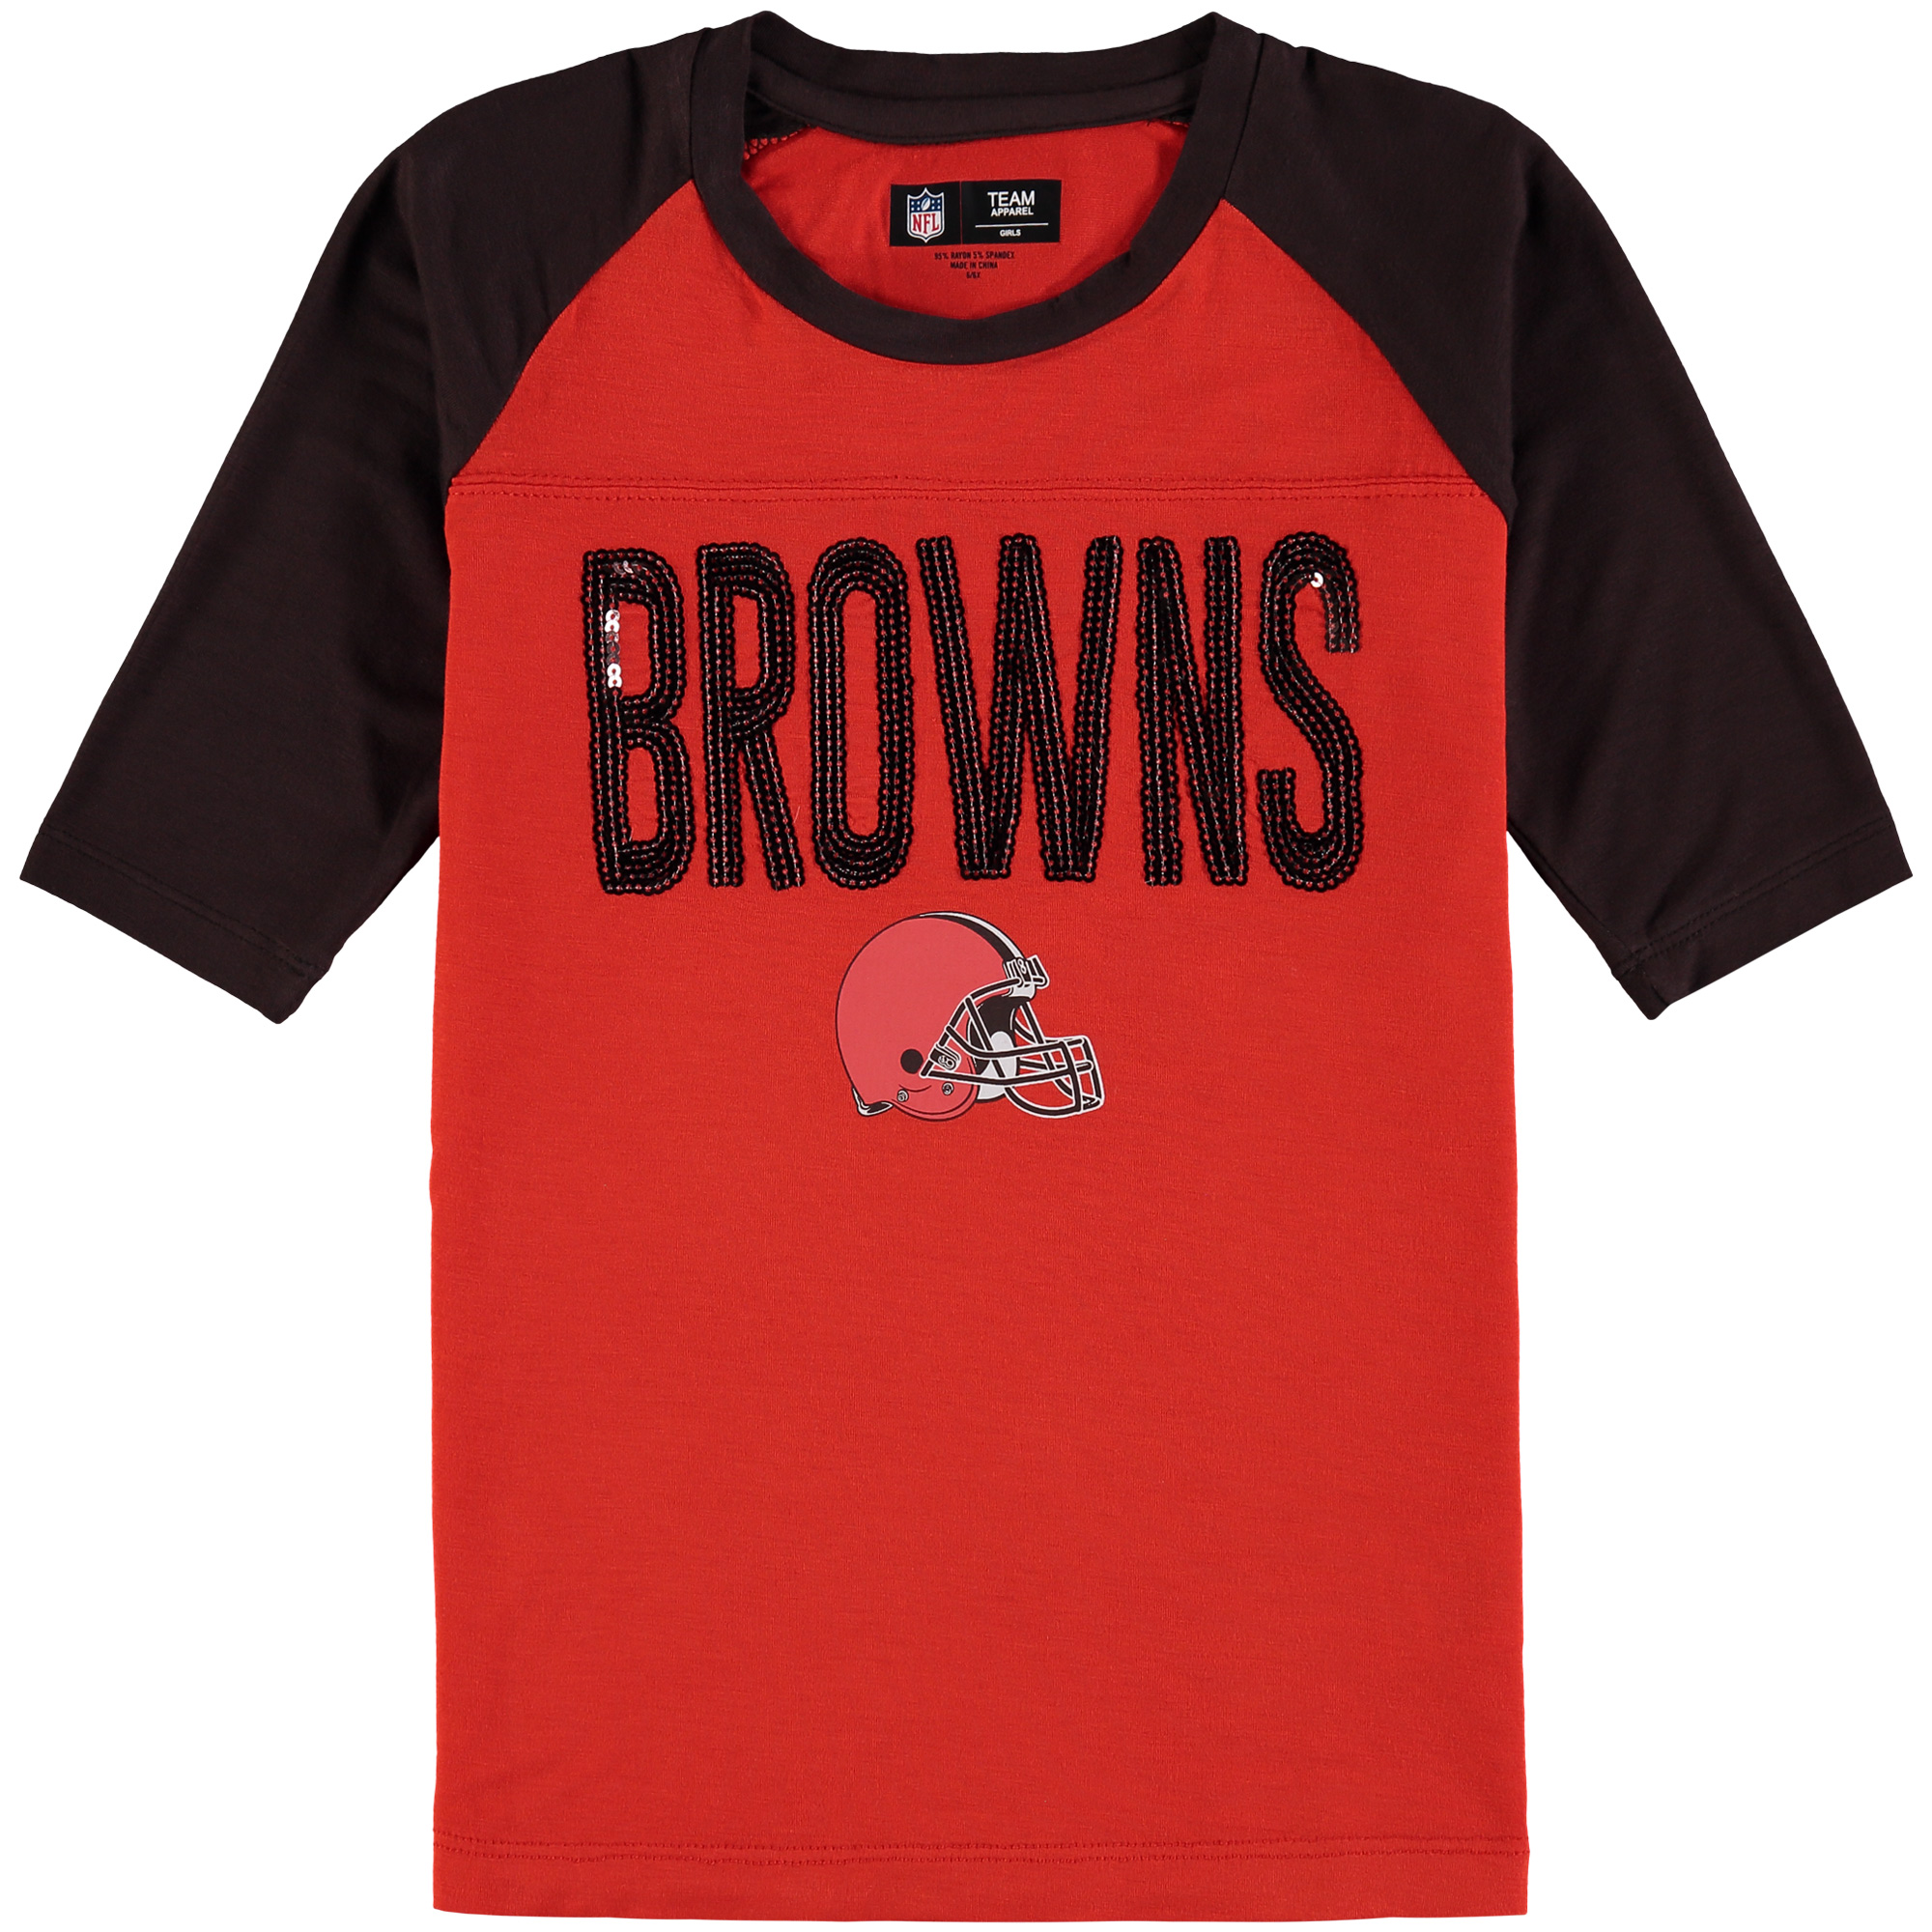 Cleveland Browns 5th & Ocean by New Era Girls Youth Sequin 3/4 Sleeve Raglan T-Shirt - Red